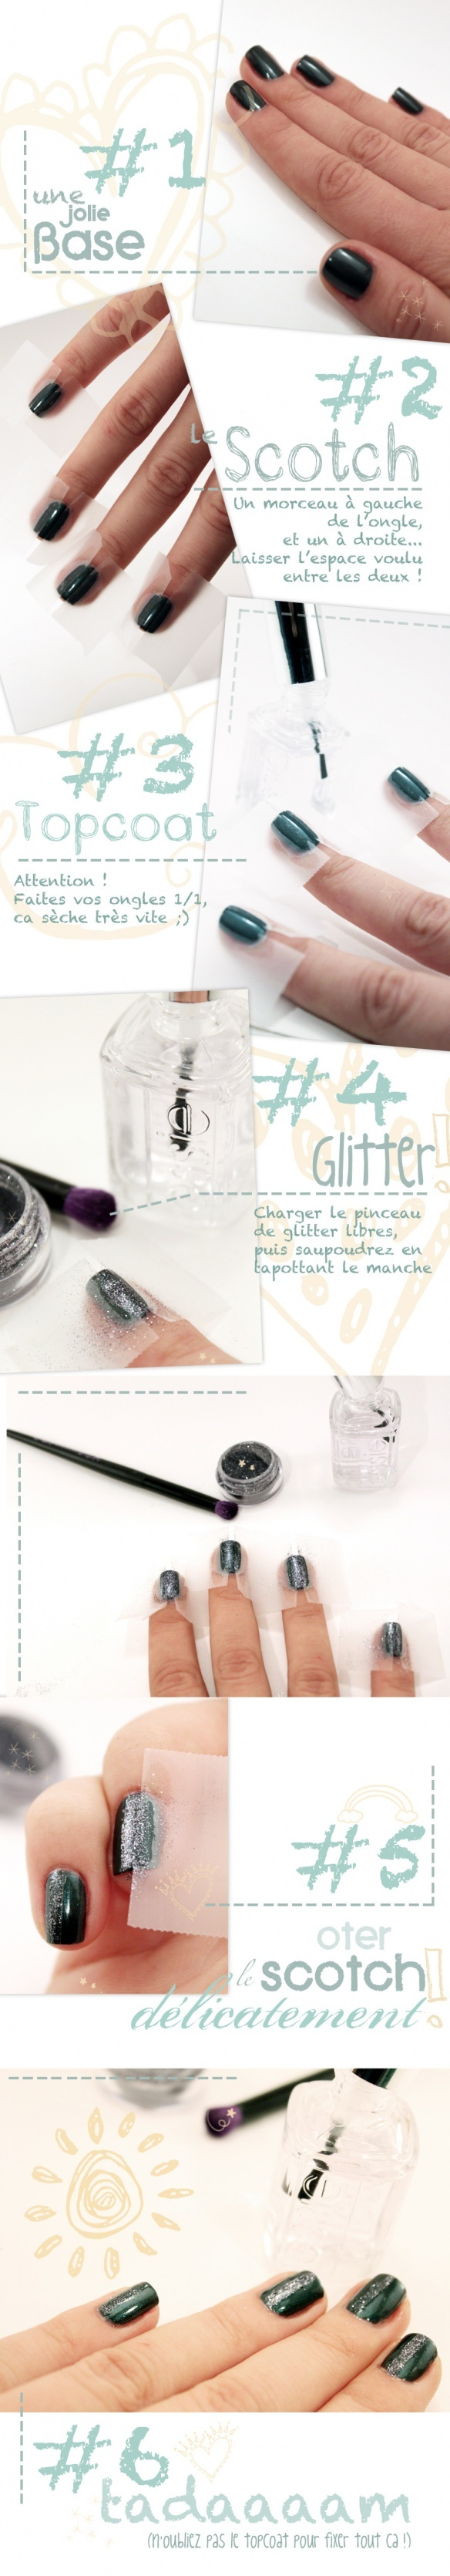 Just use tape and wrap around nail;paint with glitter, let dry and peel tape off. Result: Perfect, straight strip of glitter! #diy nail